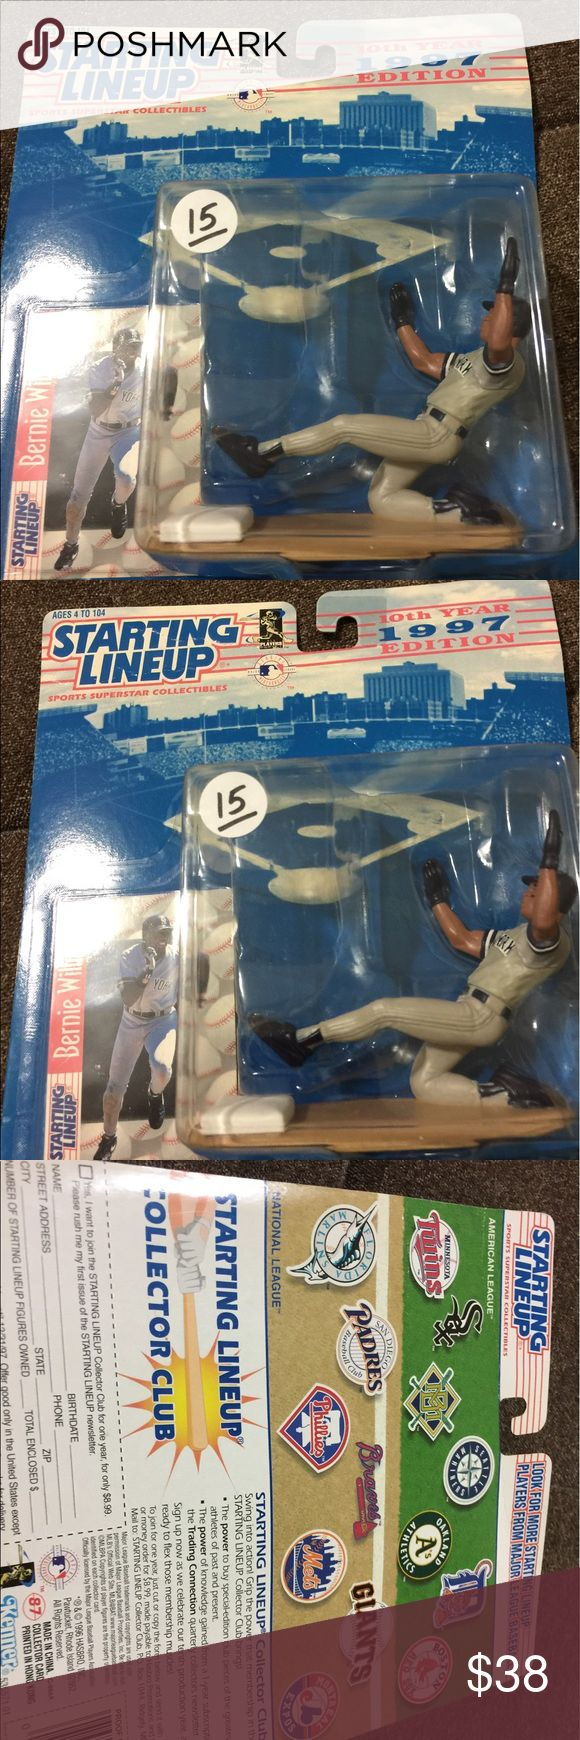 KAREN ROSS WITH ULTRA  LASER CANNON & DIAMOND COLLECTIBLE FIGURES!STARTING LINEUP SPORTS SUPERSTAR COLLECTIBLES 10th edition 1997 age 4 to 104 BARNIE WILLIAMS kenner Other